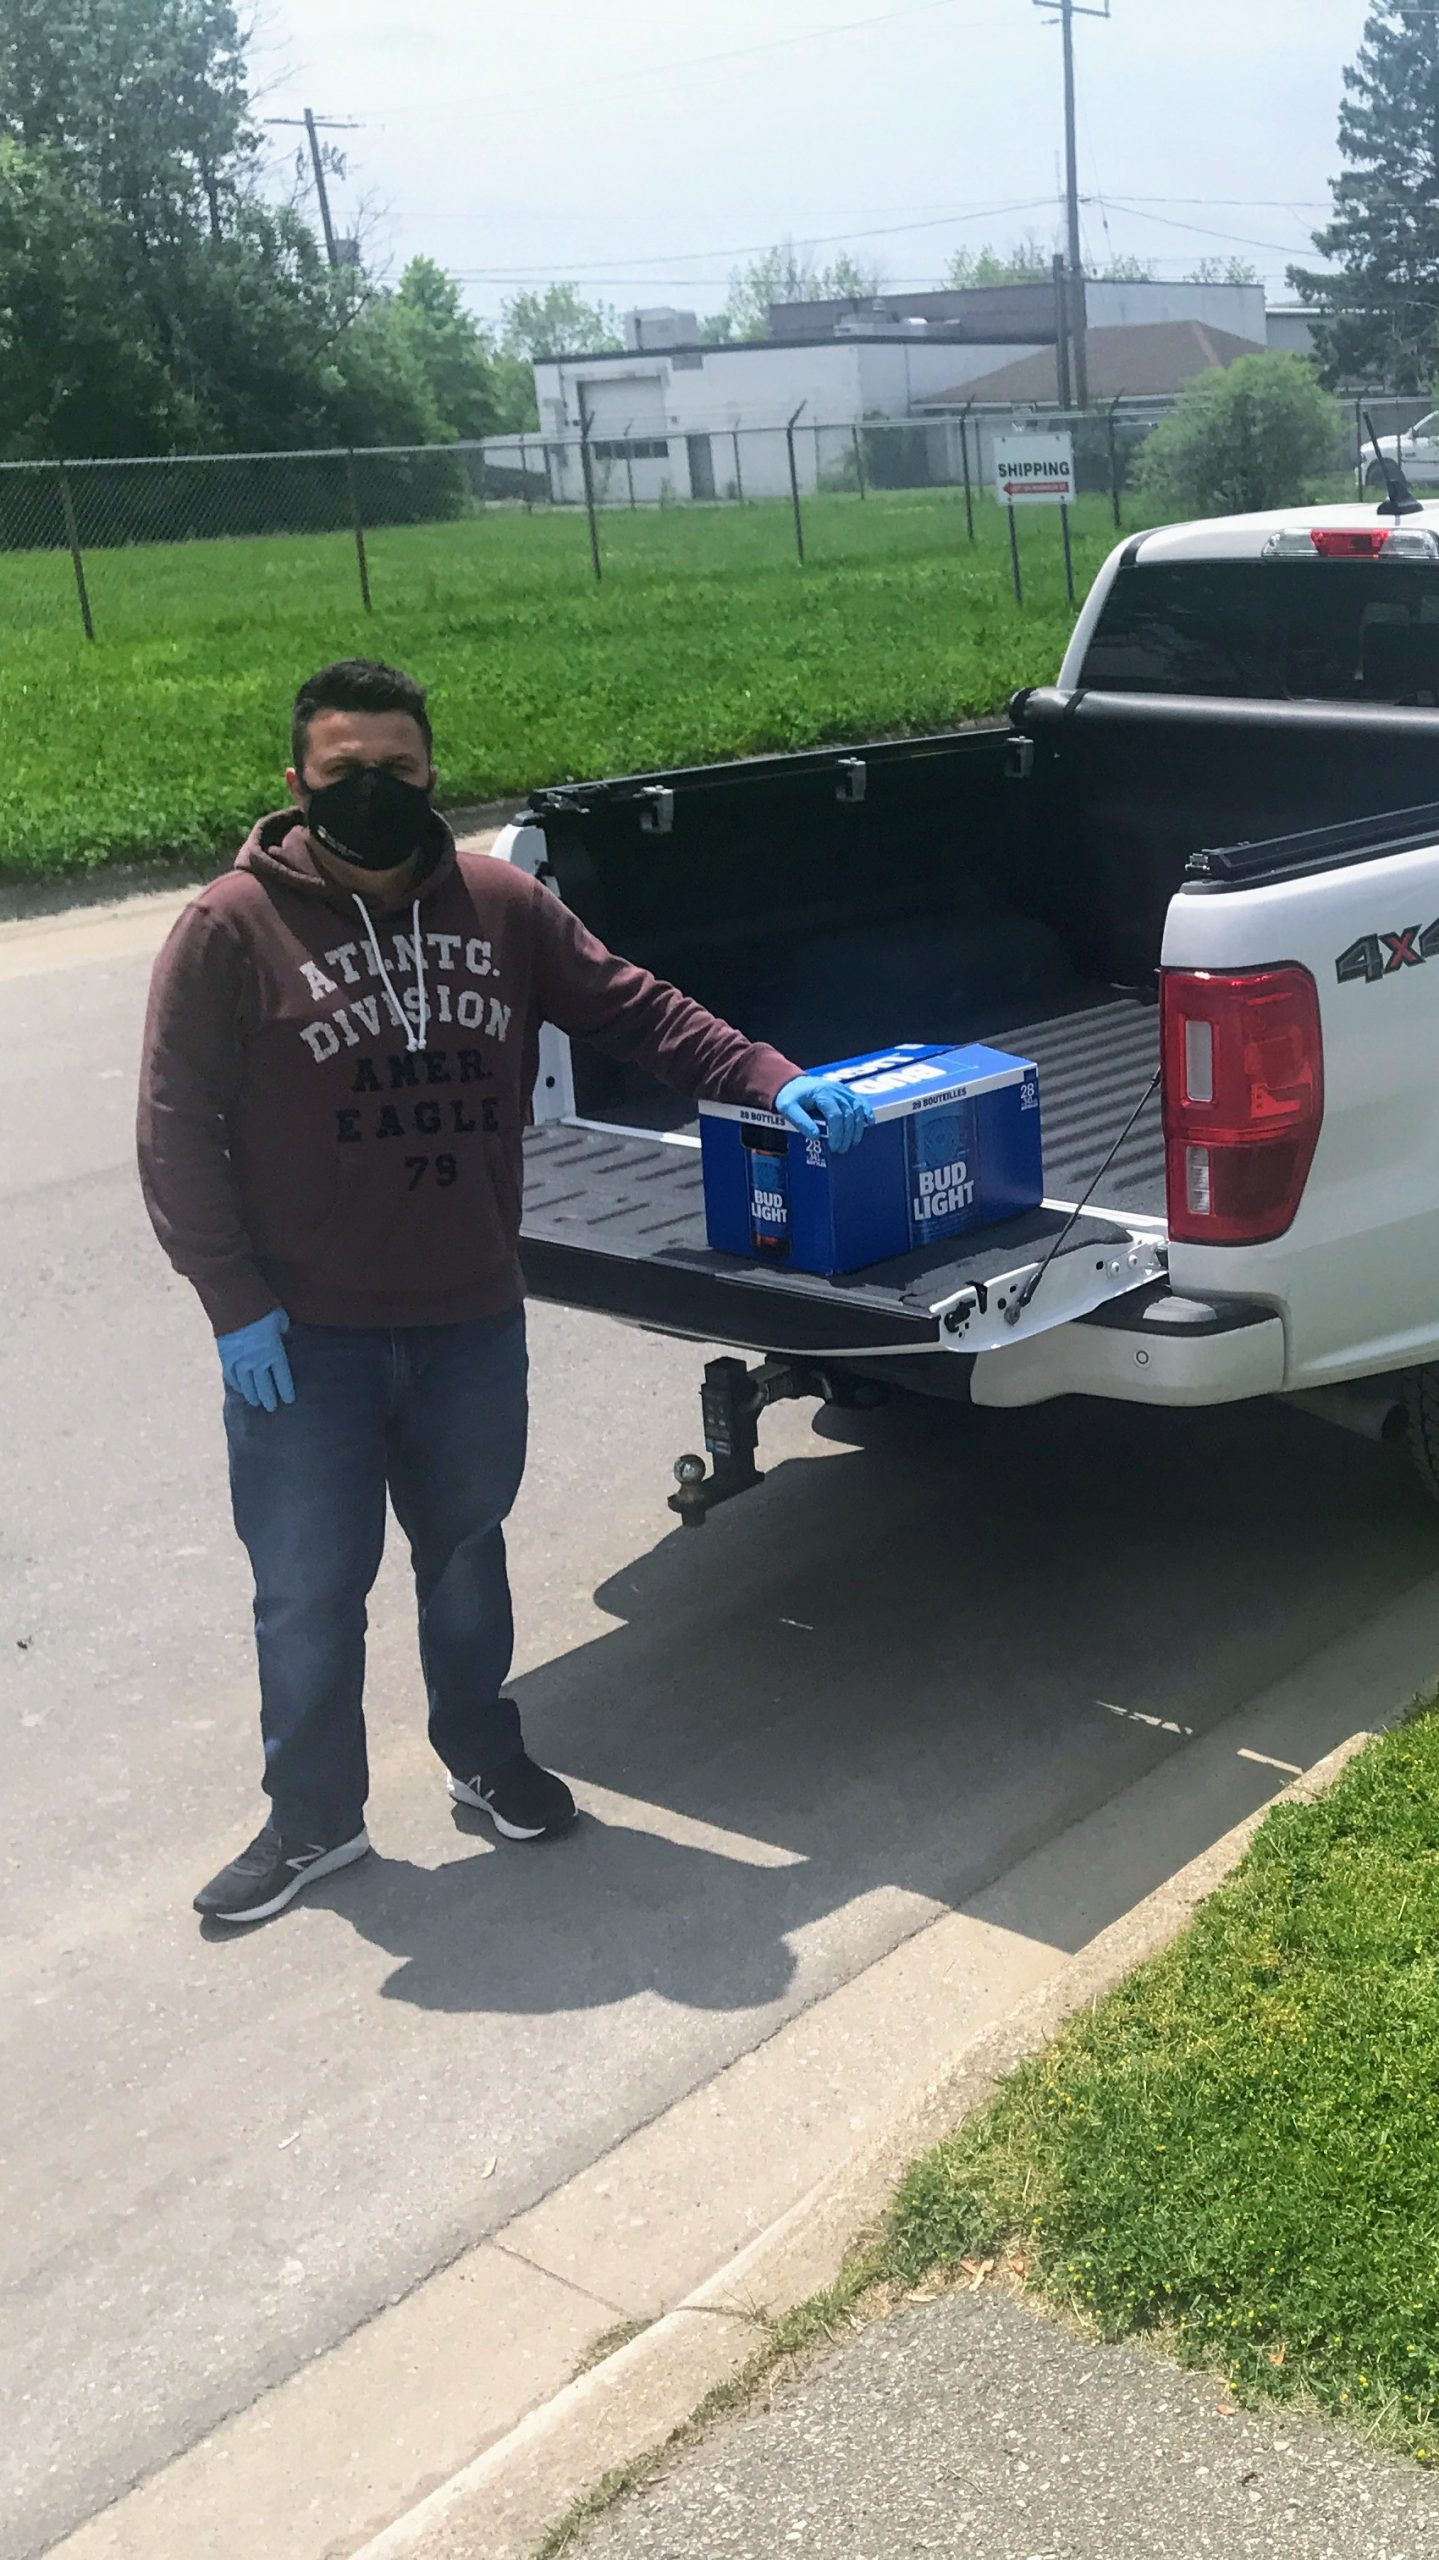 [JUNE 8, 2020] Empties Collection 4 Charity – Contactless Curbside Pickup